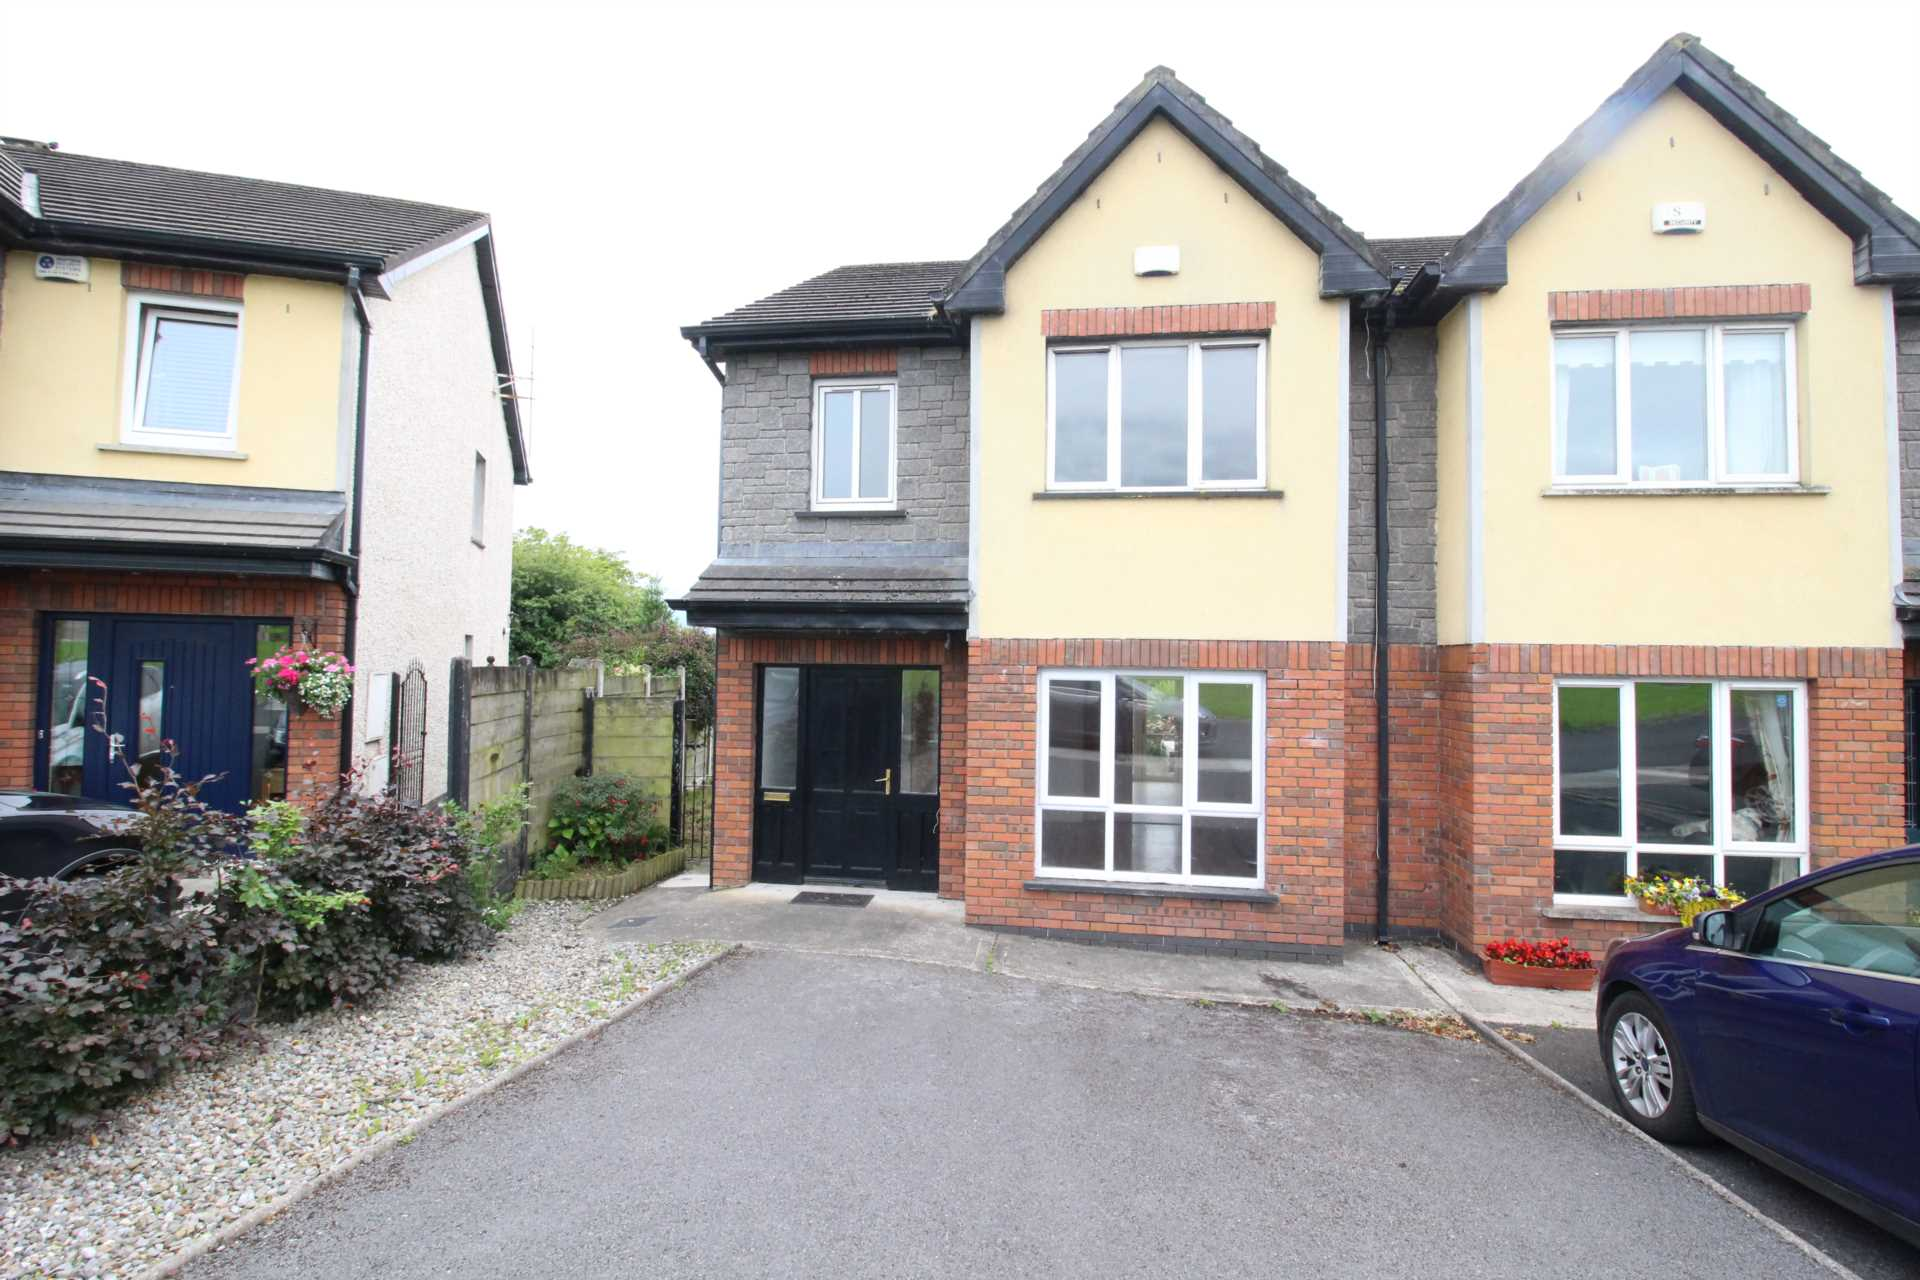 25 Ashfort, Golf Links Road, Castletroy, Co. Limerick